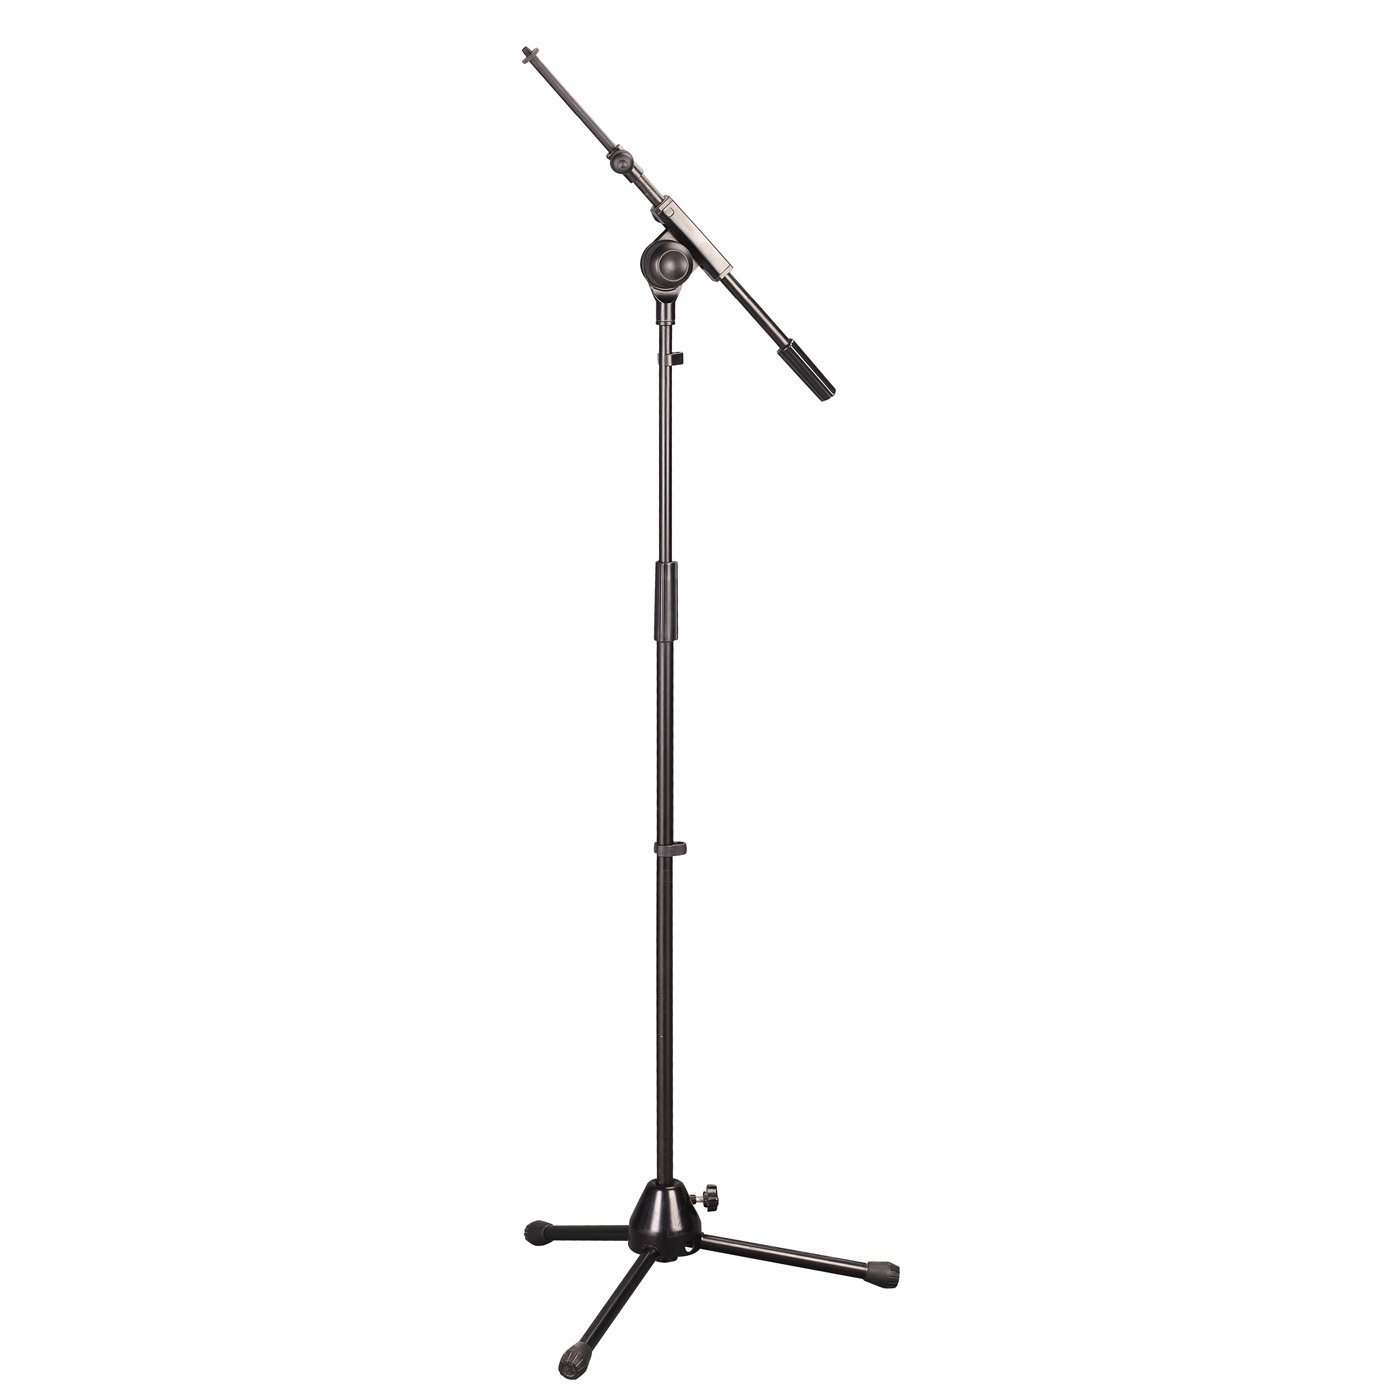 HAMILTON KB845M STAGEPRO MICROPHONE BOOM STAND TELESCOPING TRIPOD